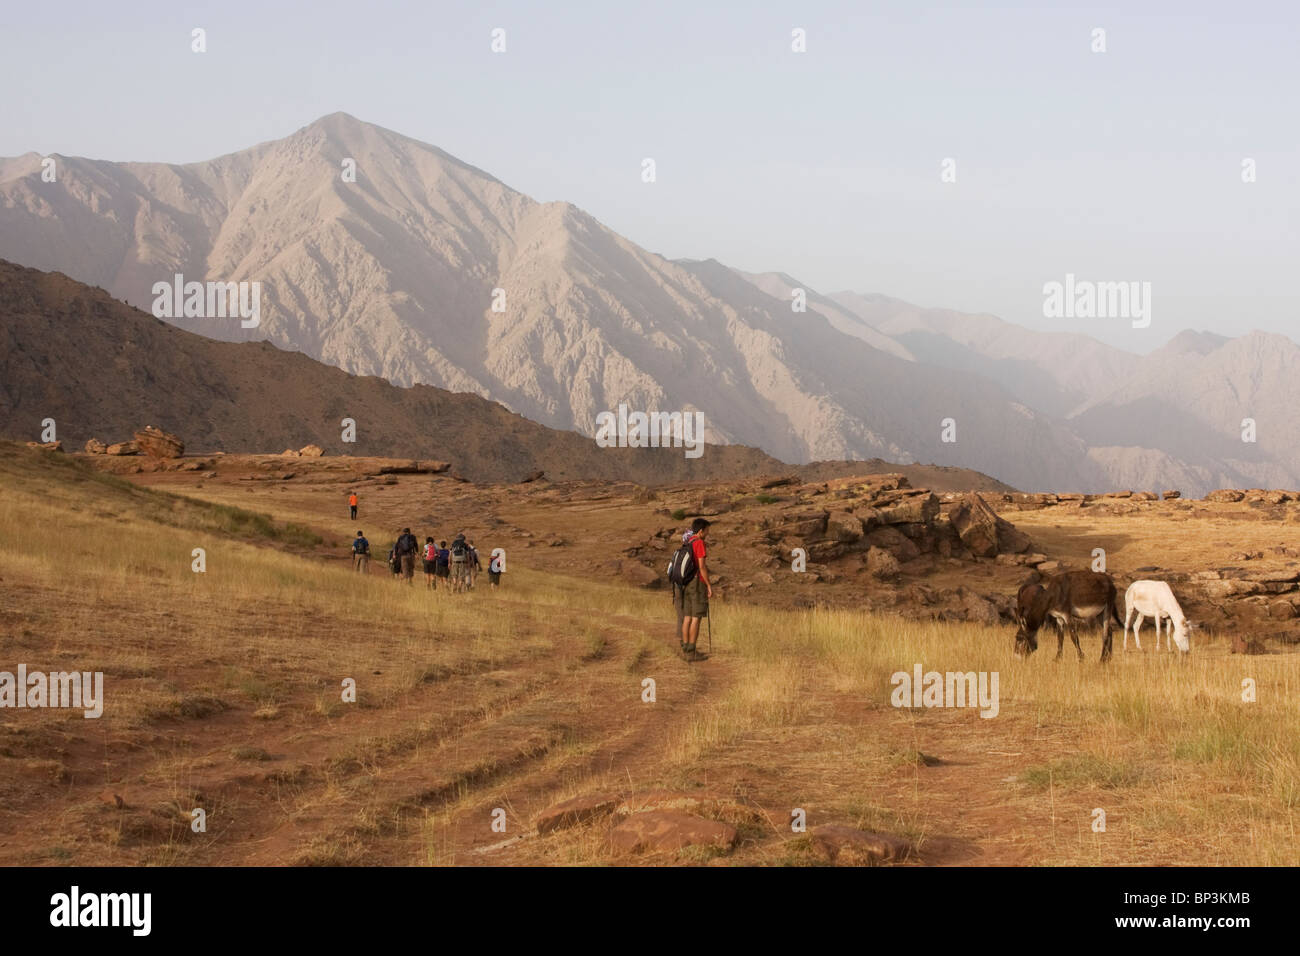 Trekkers in Yagour Plateau in High Atlas Mountains - Stock Image